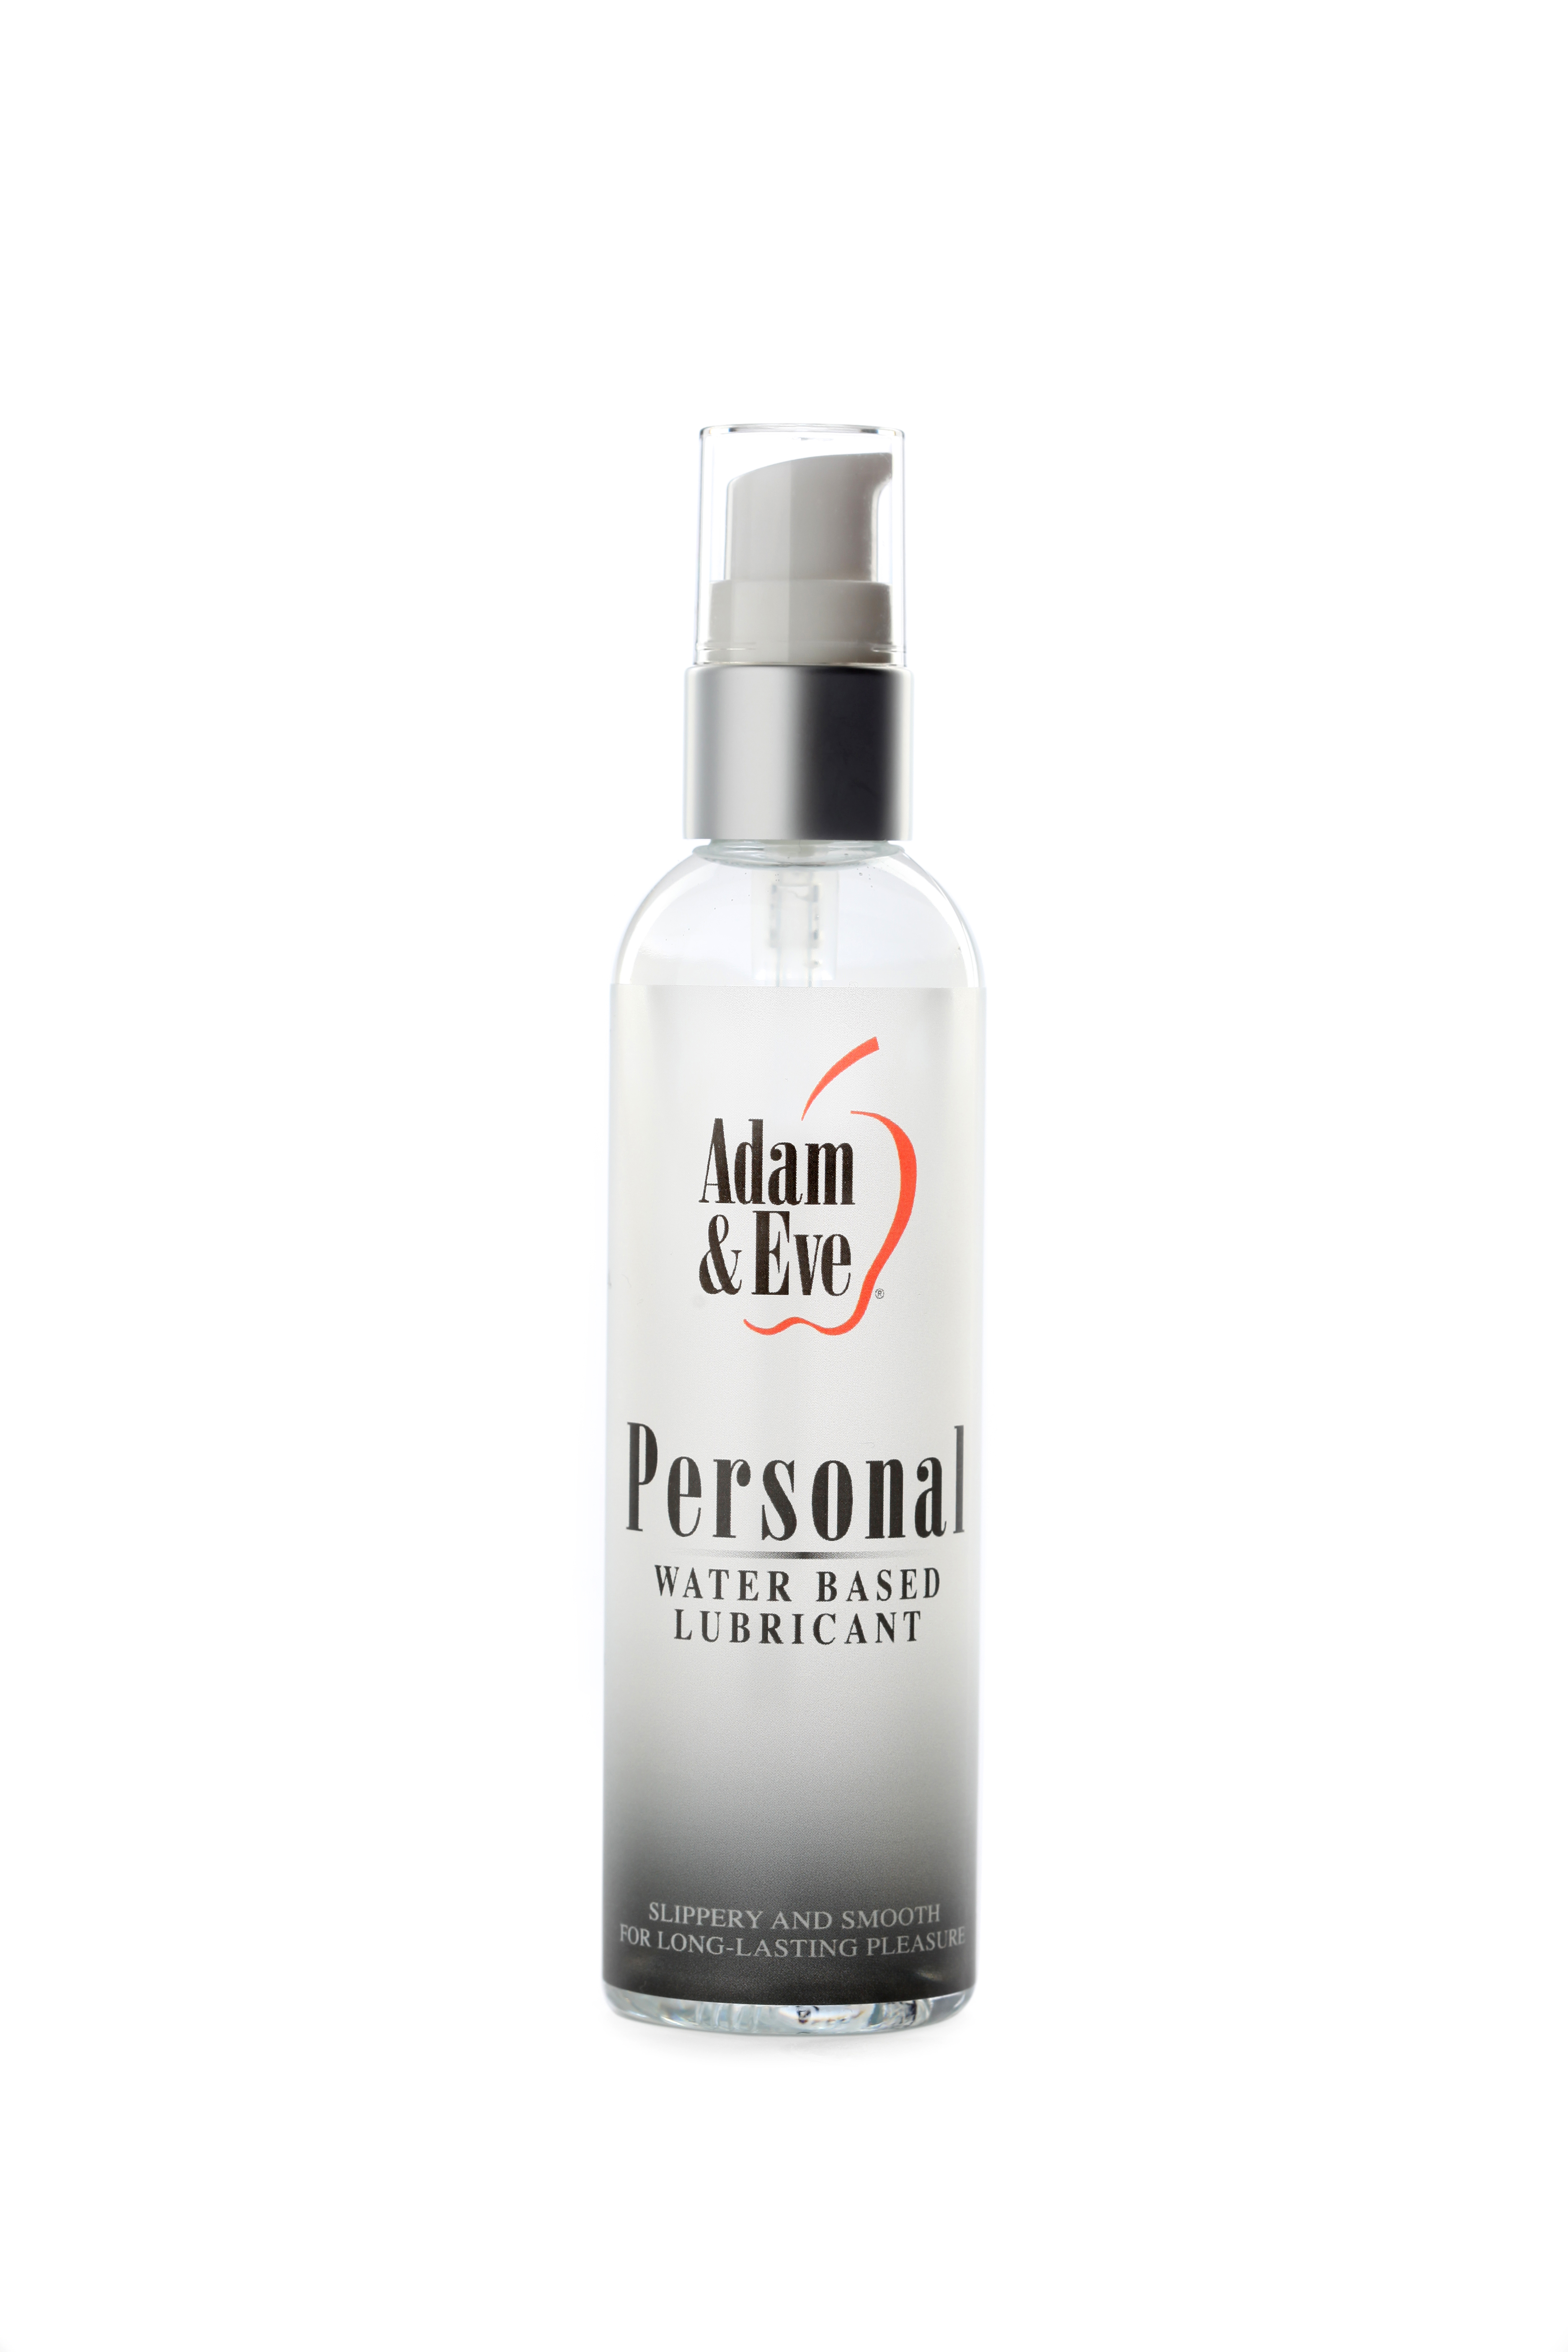 ADAM & EVE PERSONAL WATER BASED LUBE 4 OZ